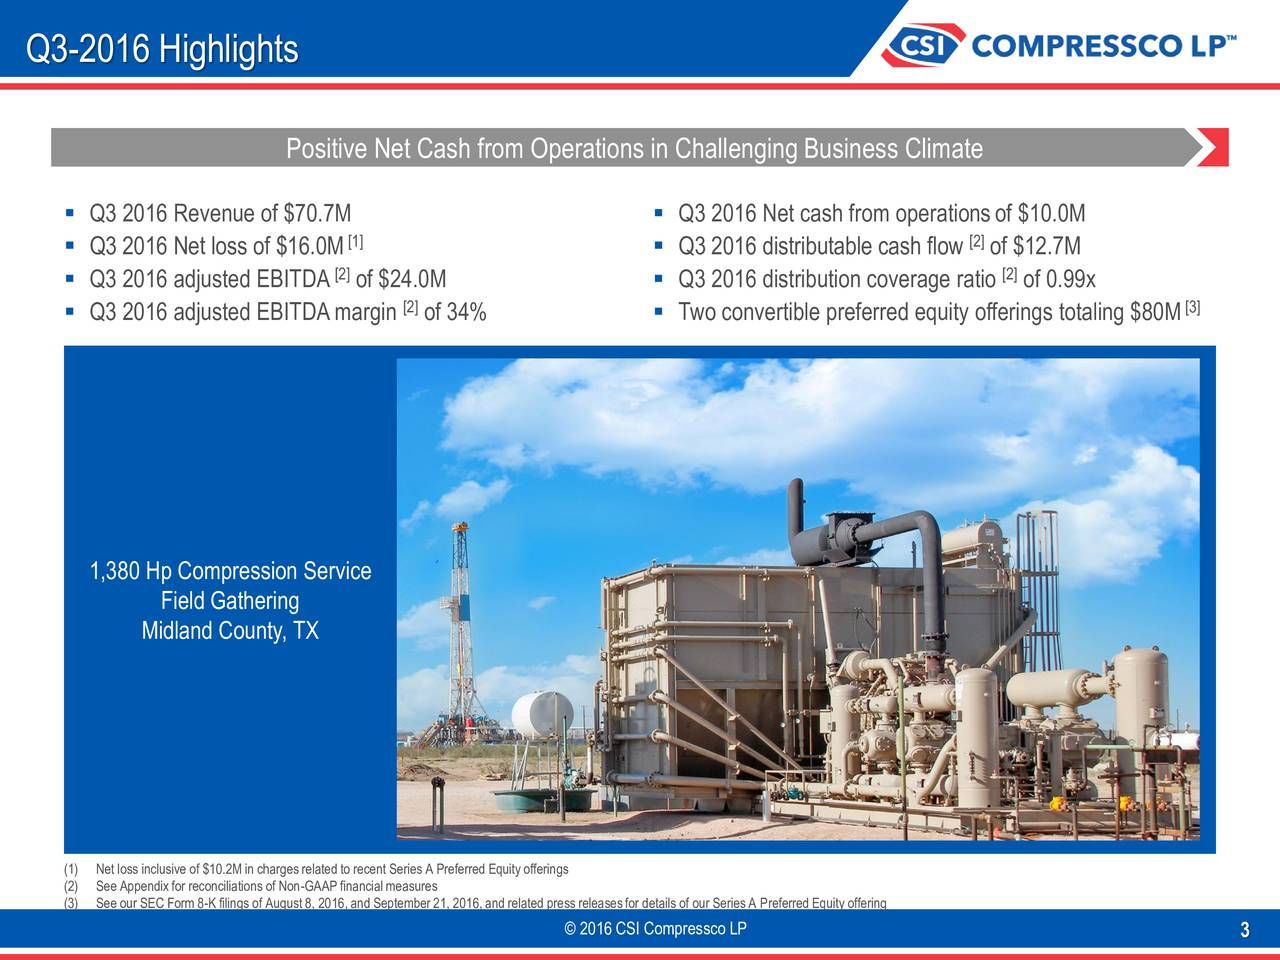 Positive Net Cash from Operations in Challenging Business Climate Q3 2016 Revenue of $70.7M  Q3 2016 Net cash from operationsof $10.0M Q3 2016 Net loss of $16.0M [1]  Q3 2016 distributable cash flow [2]of $12.7M Q3 2016 adjusted EBITDA [2of $24.0M  Q3 2016 distribution coverage ratio [2]of 0.99x Q3 2016 adjusted EBITDAmargin [2]of 34%  Two convertible preferred equity offerings totaling $80M [3] 1,380 Hp Compression Service Field Gathering Midland County, TX (1) Net loss inclusive of $10.2Min chargesrelated to recent Series A Preferred Equity offerings (2) See Appendixfor reconciliations of Non-GAAP financialmeasures (3) See our SEC Form 8-K filings of August8, 2016,and September21, 2016,and related press releasesfor details of our SeriesA PreferredEquity offering 2016 CSI Compressco LP 3